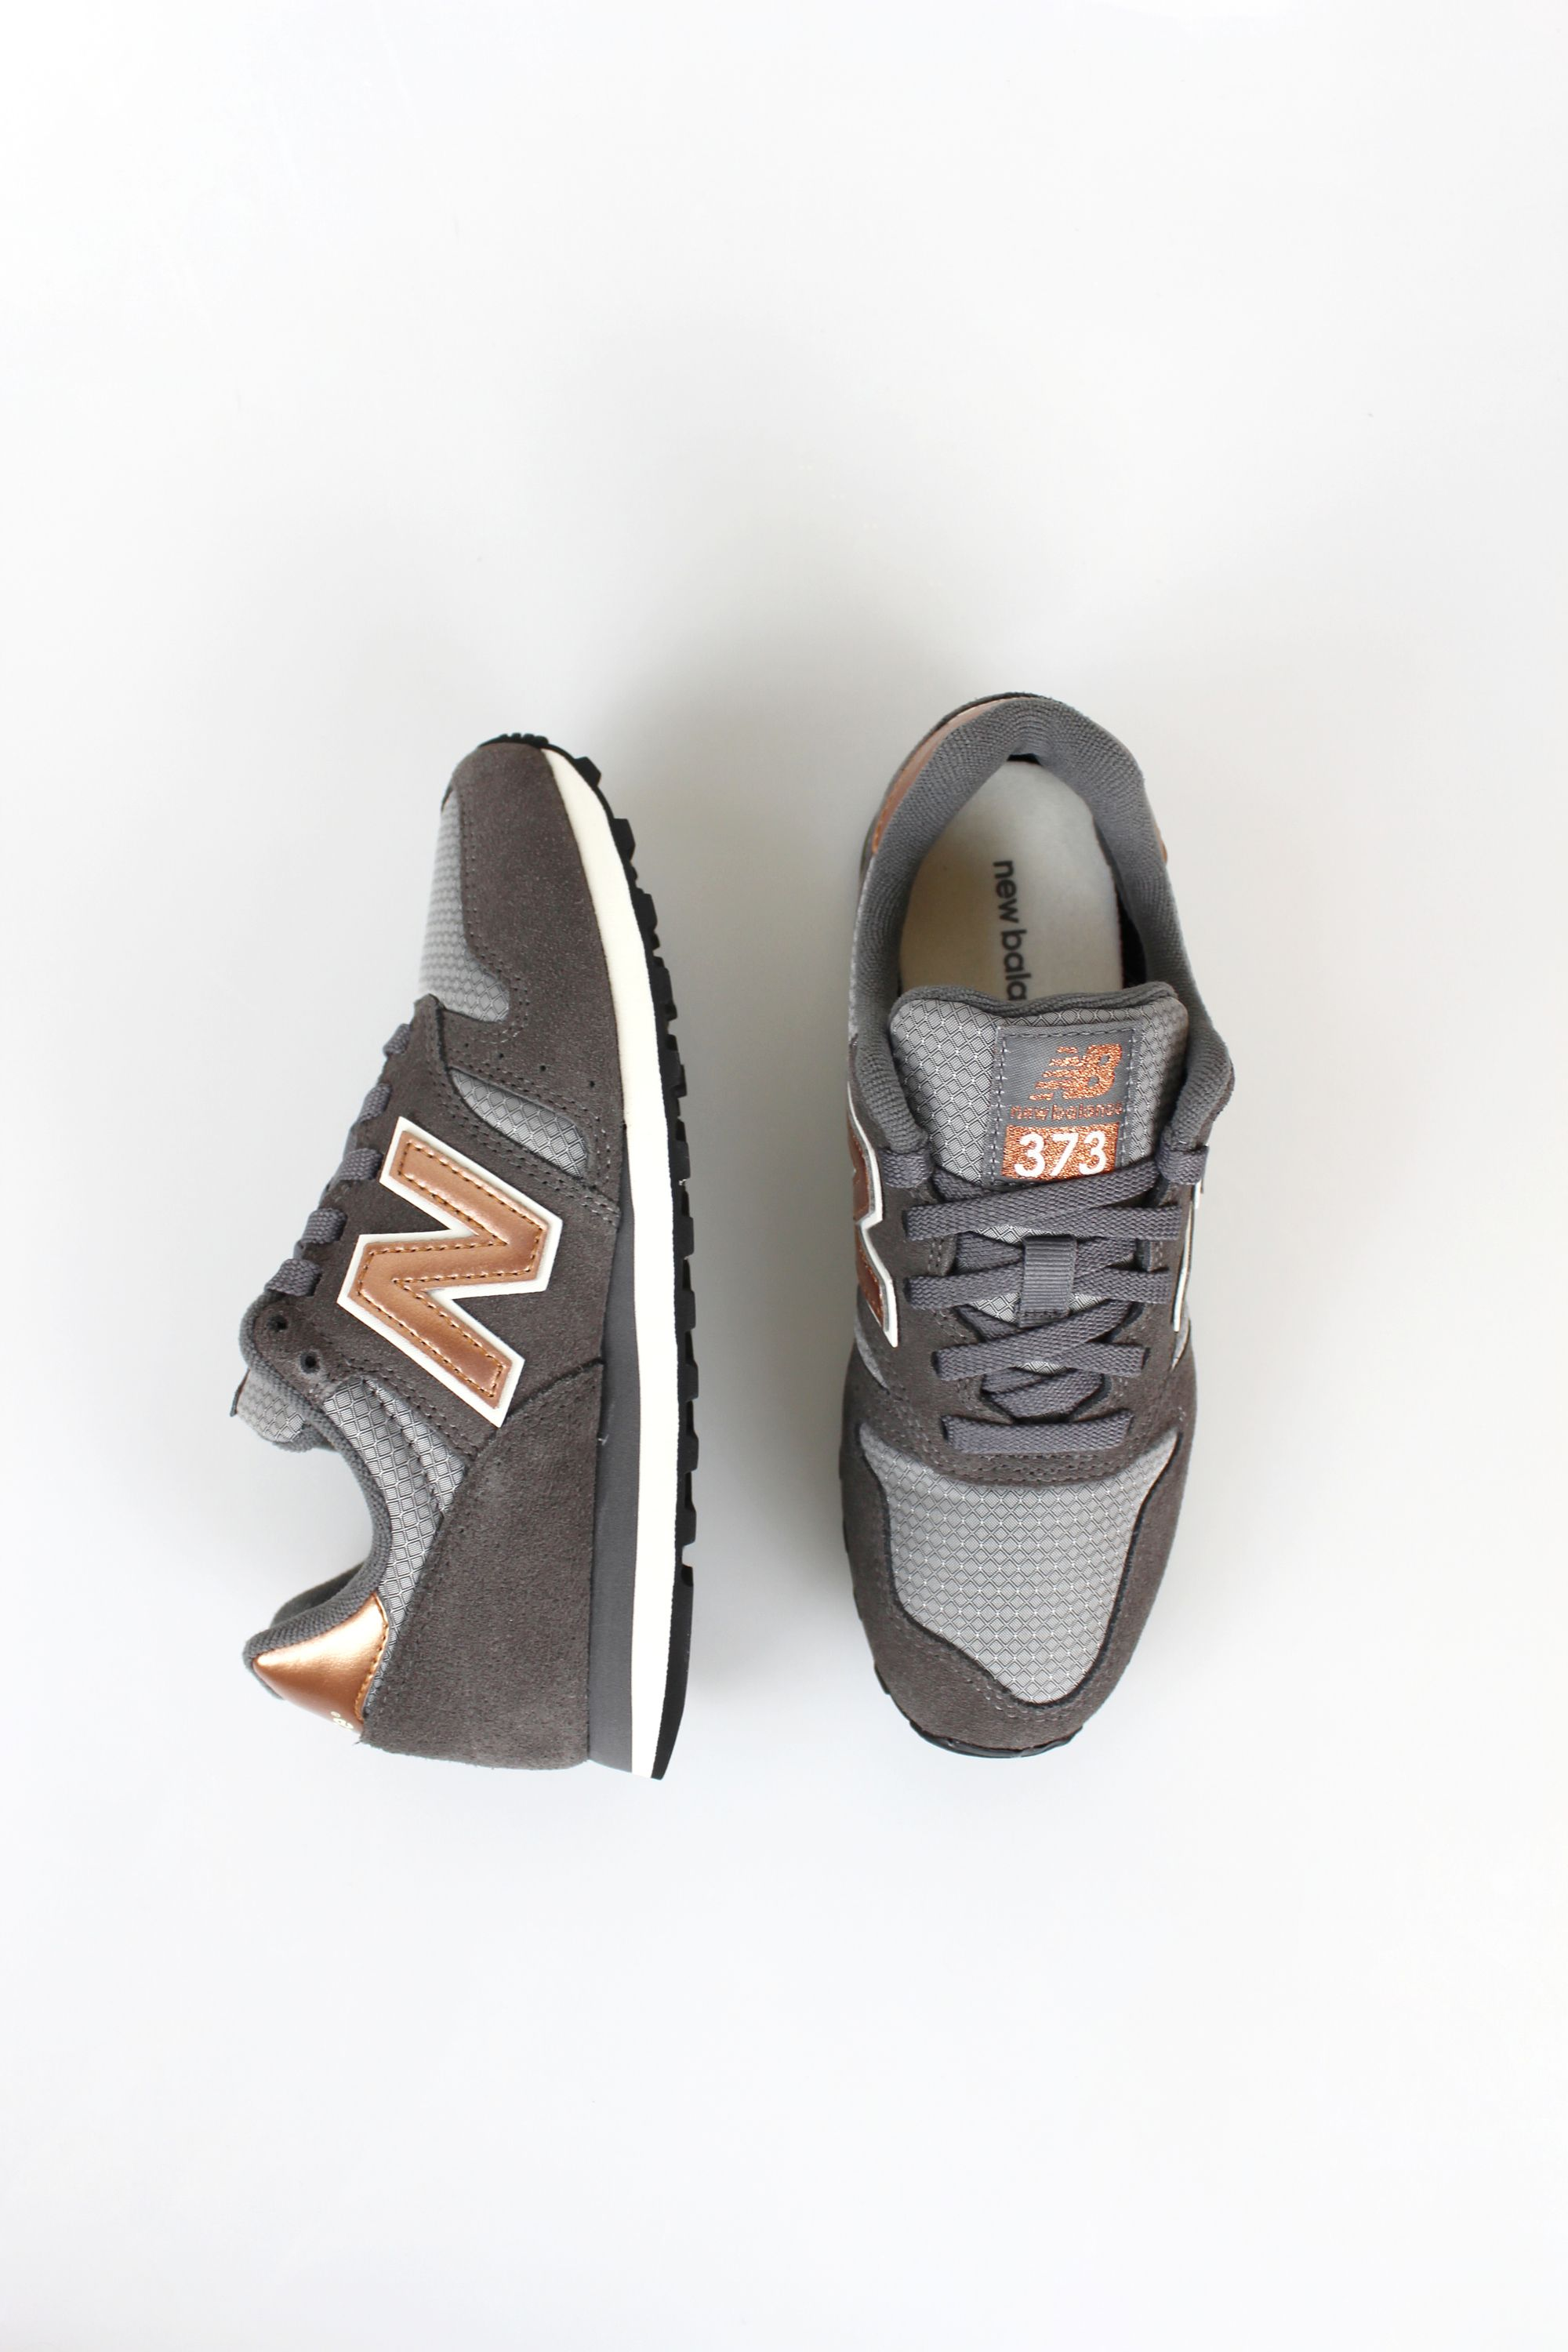 New Balance 373 Castlerock/Copper Metallic Leather - Trainers Shoes